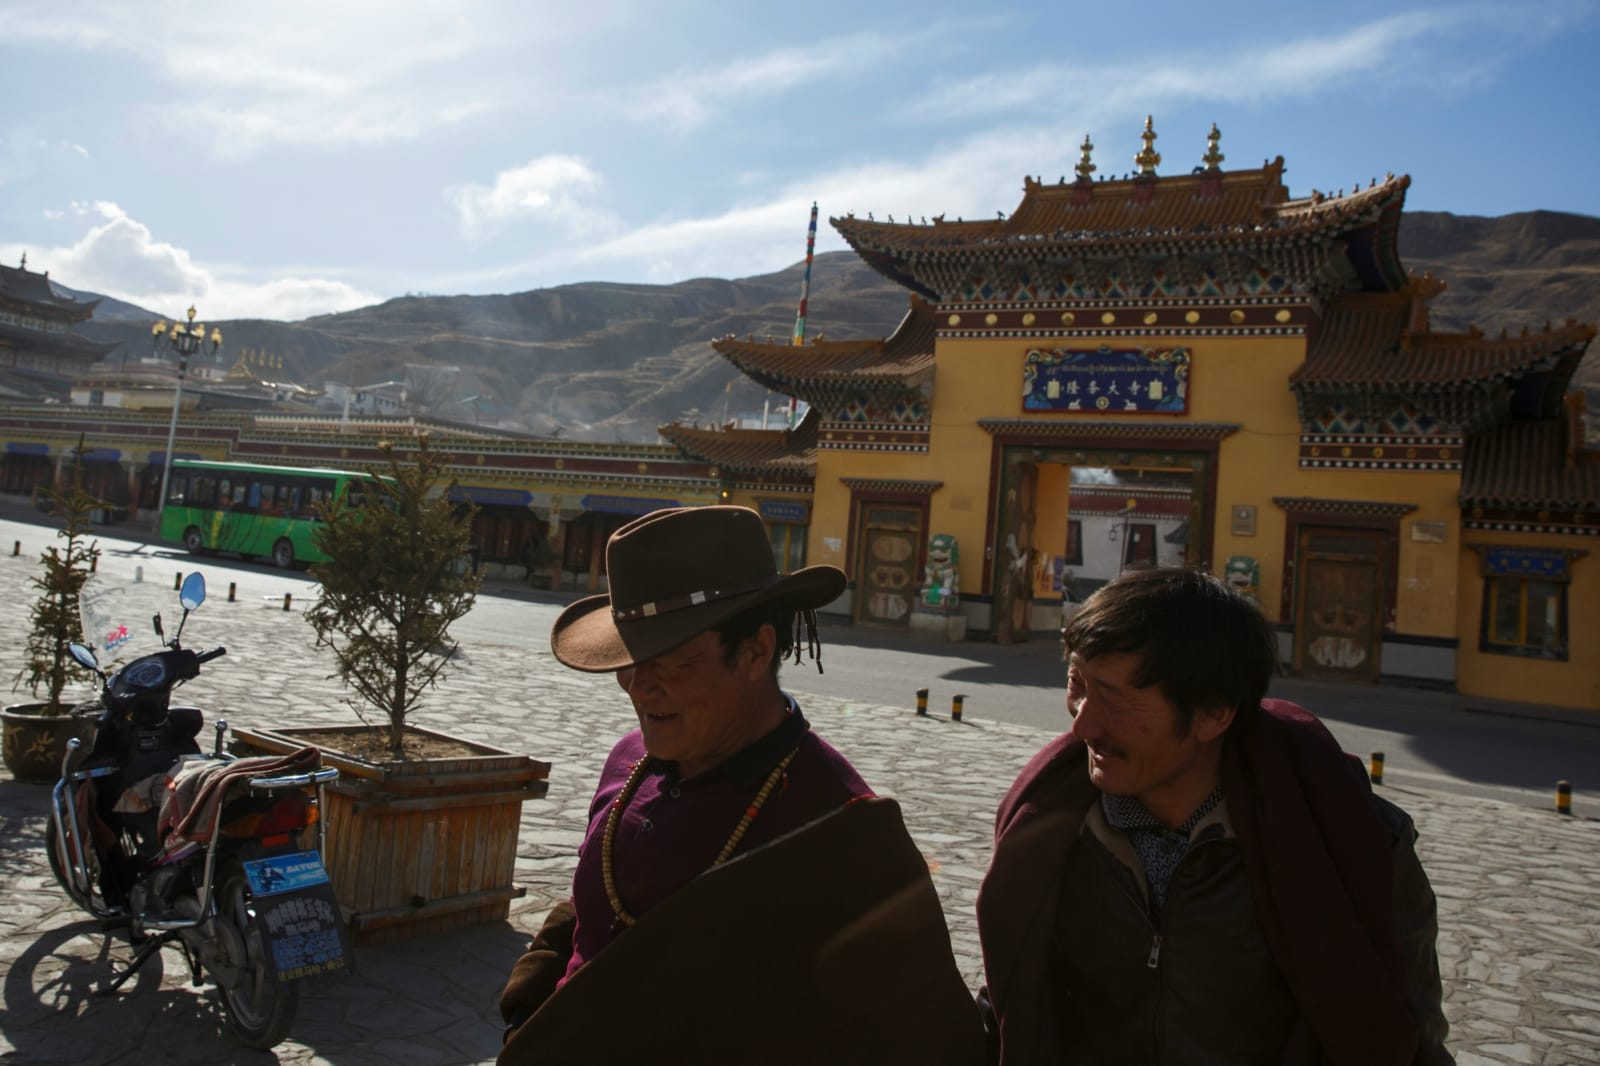 Tibetan men leave Rongwo Monastery in the largely ethnic Tibetan town of Rebkong, Qinghai province, China March 9, 2019. REUTERS/Thomas Peter